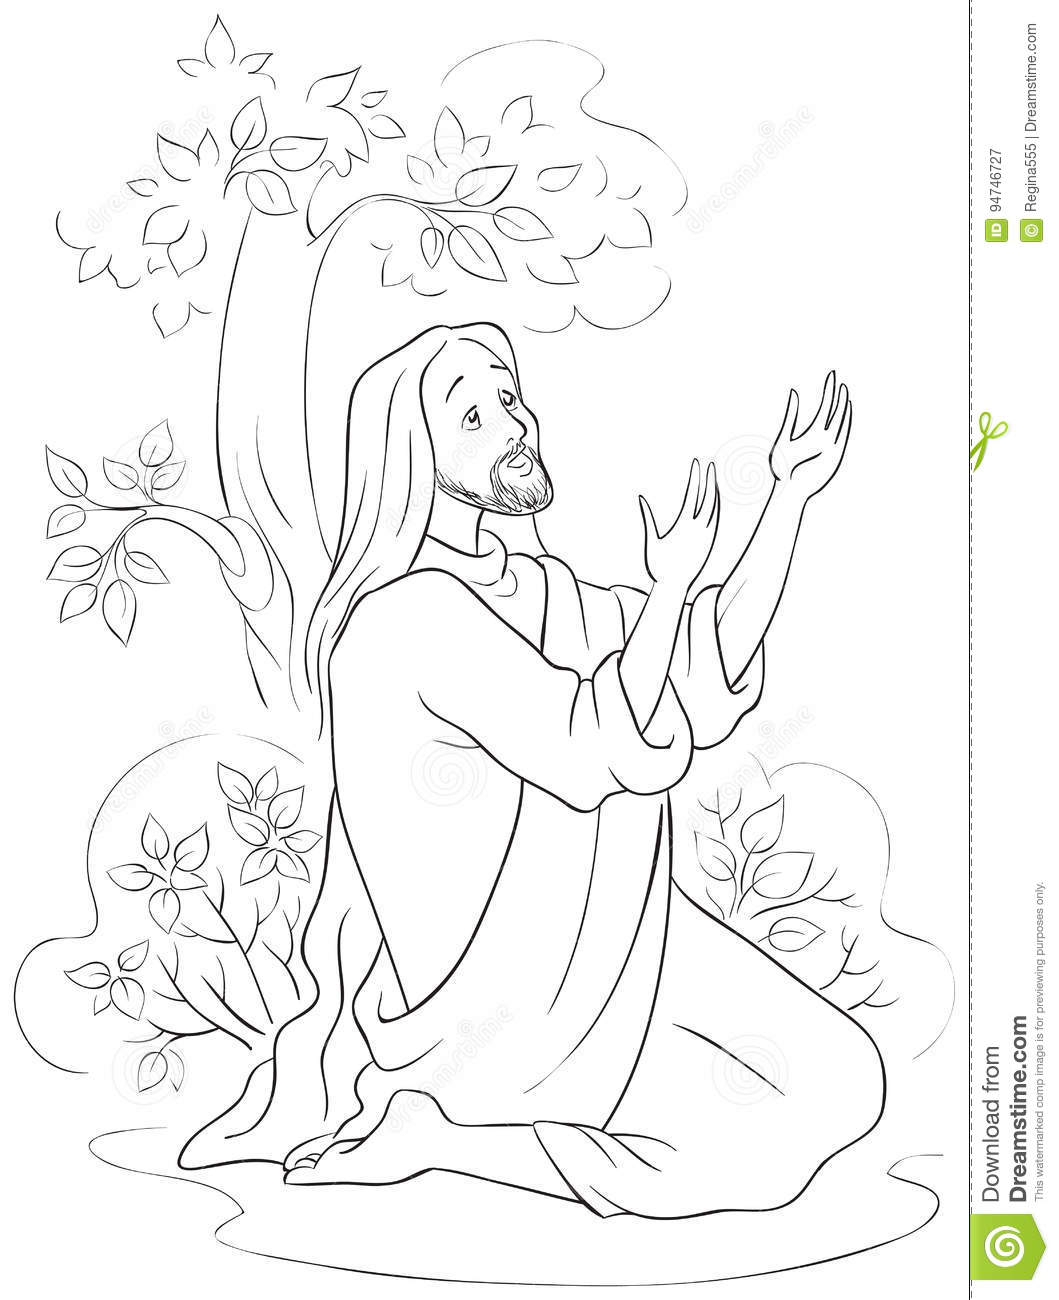 Free Jesus On Cross Coloring Page, Download Free Clip Art, Free ... | 1300x1059